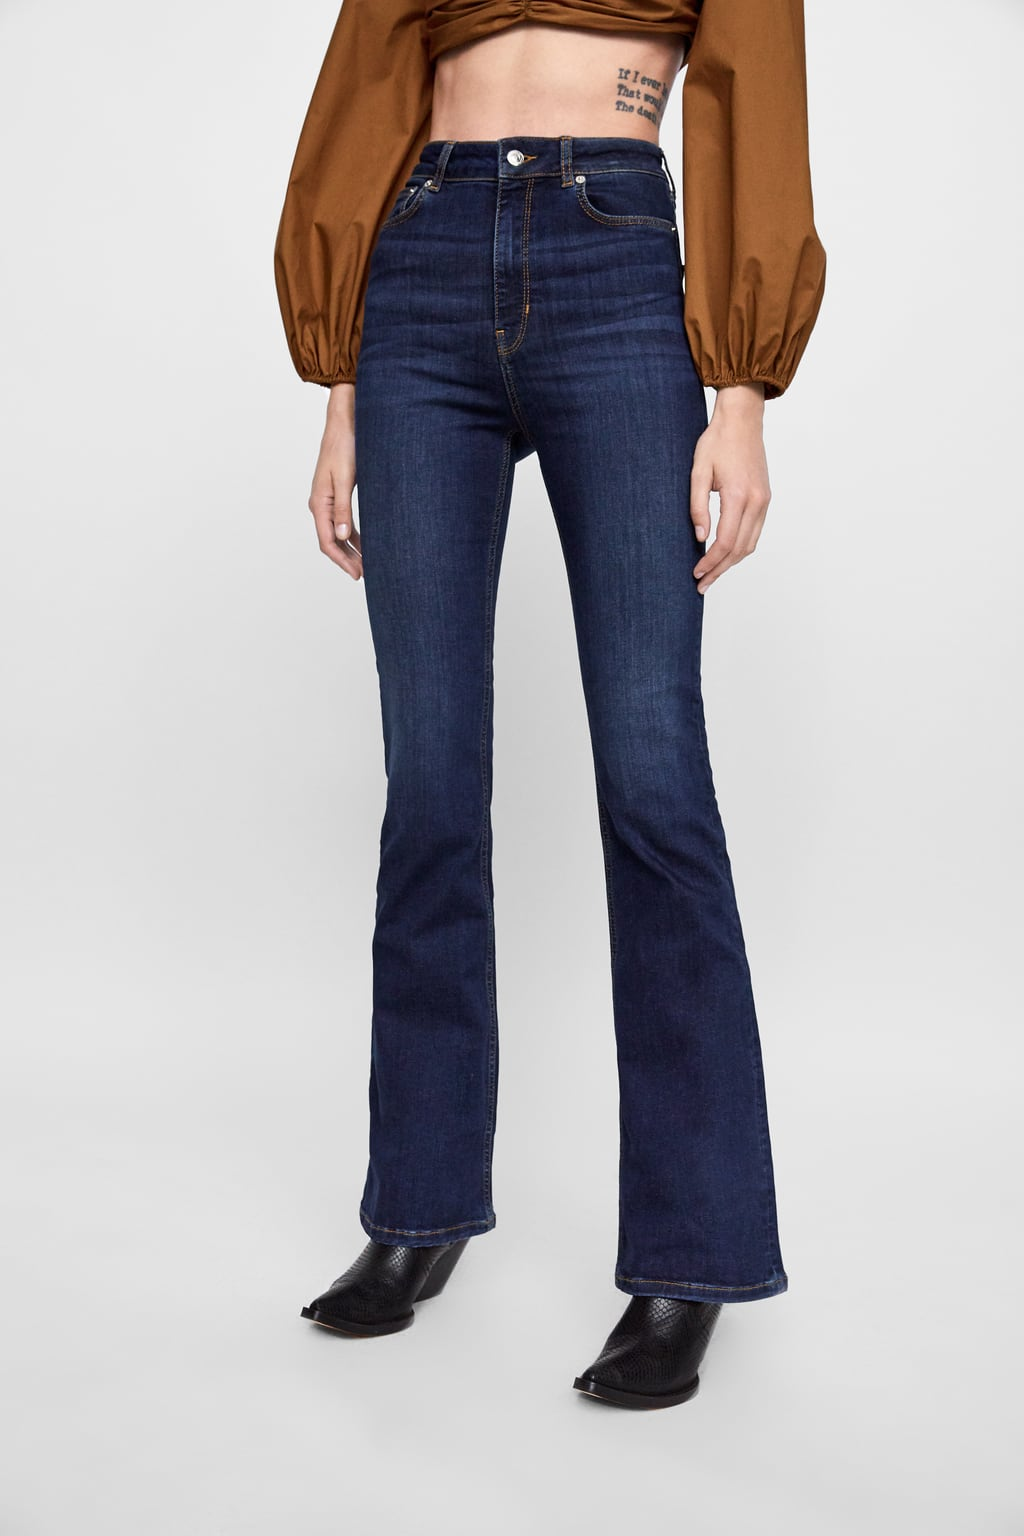 zara, high rise jeans, flare jeans, dark washed denim